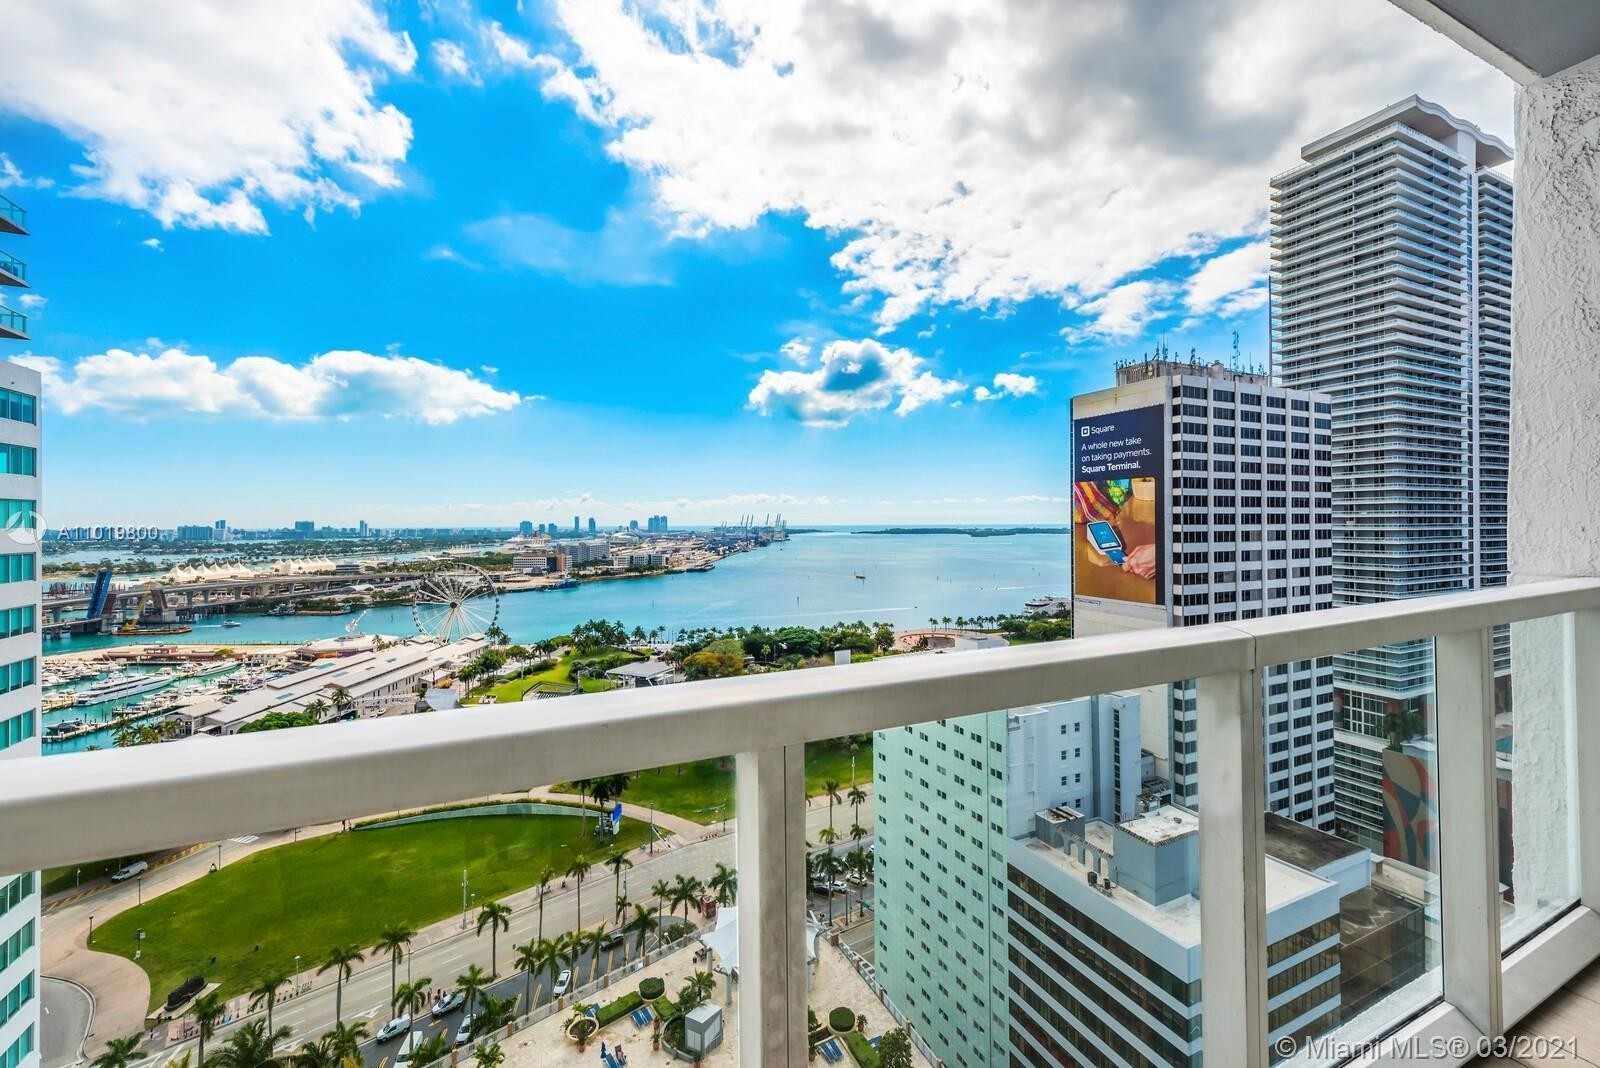 Condominium pour l Vente à 253 NE 2nd St , 2503 Miami Central Business District, Miami, FL 33132